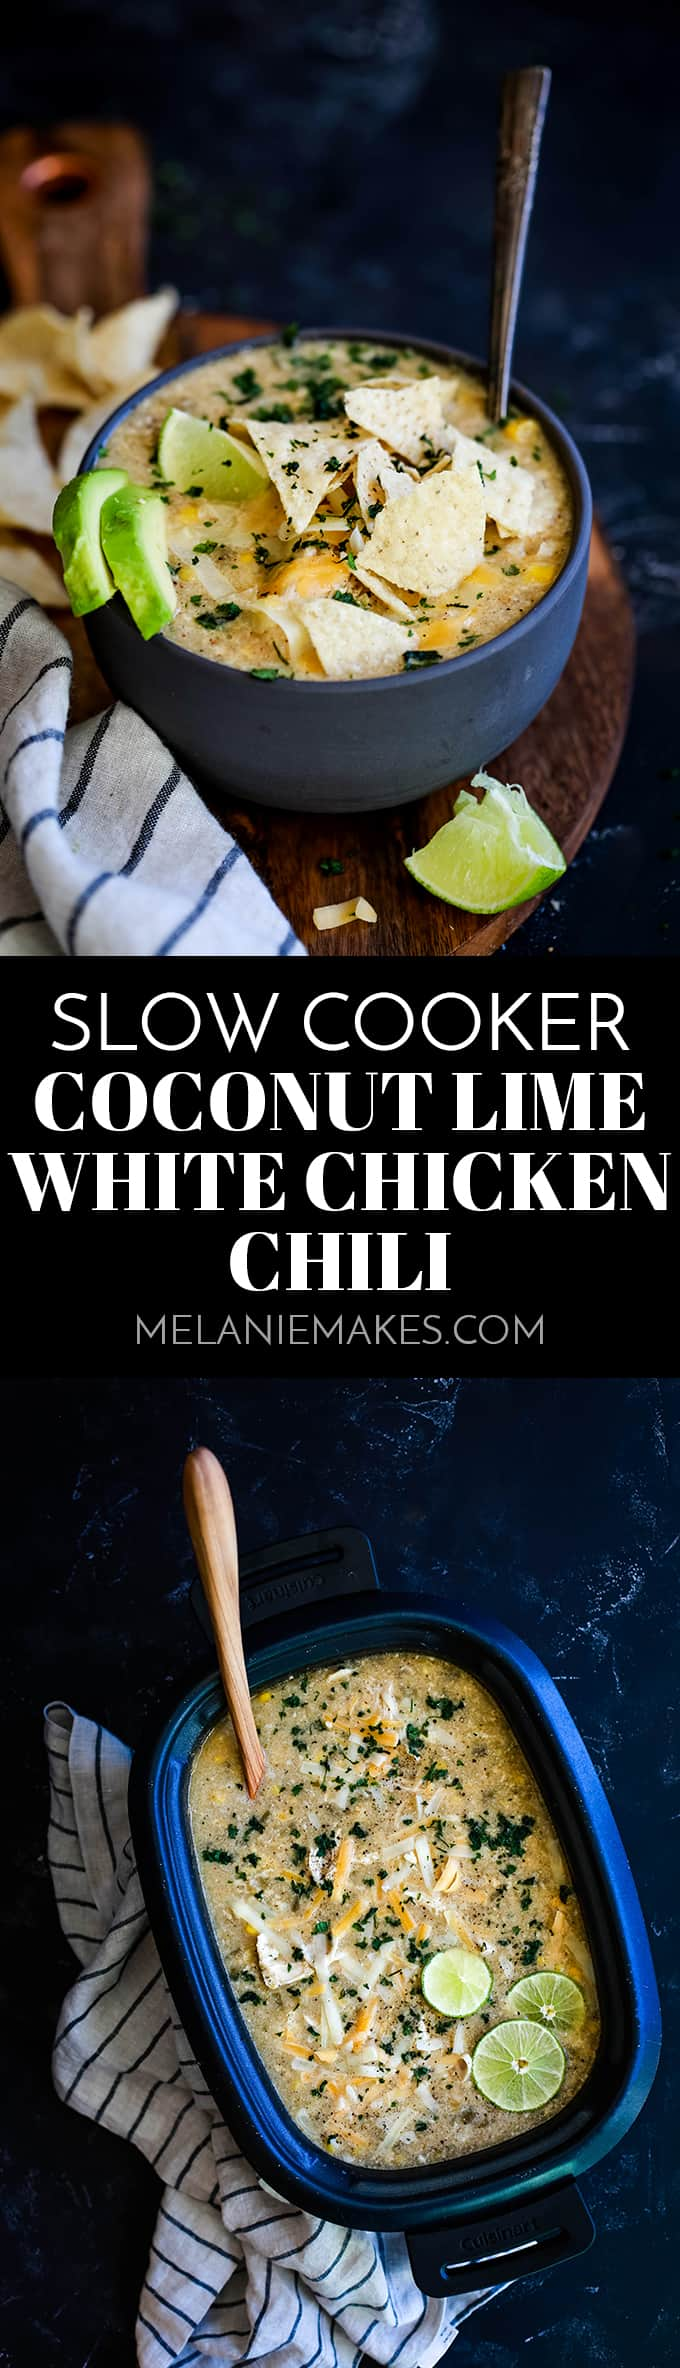 This crazy easy and super flavorful Slow Cooker Coconut Lime White Chicken Chili is a comforting bowl perfect for any day of the week. #slowcooker #crockpot #soup #chili #chicken #chickenrecipes #lime #coconut